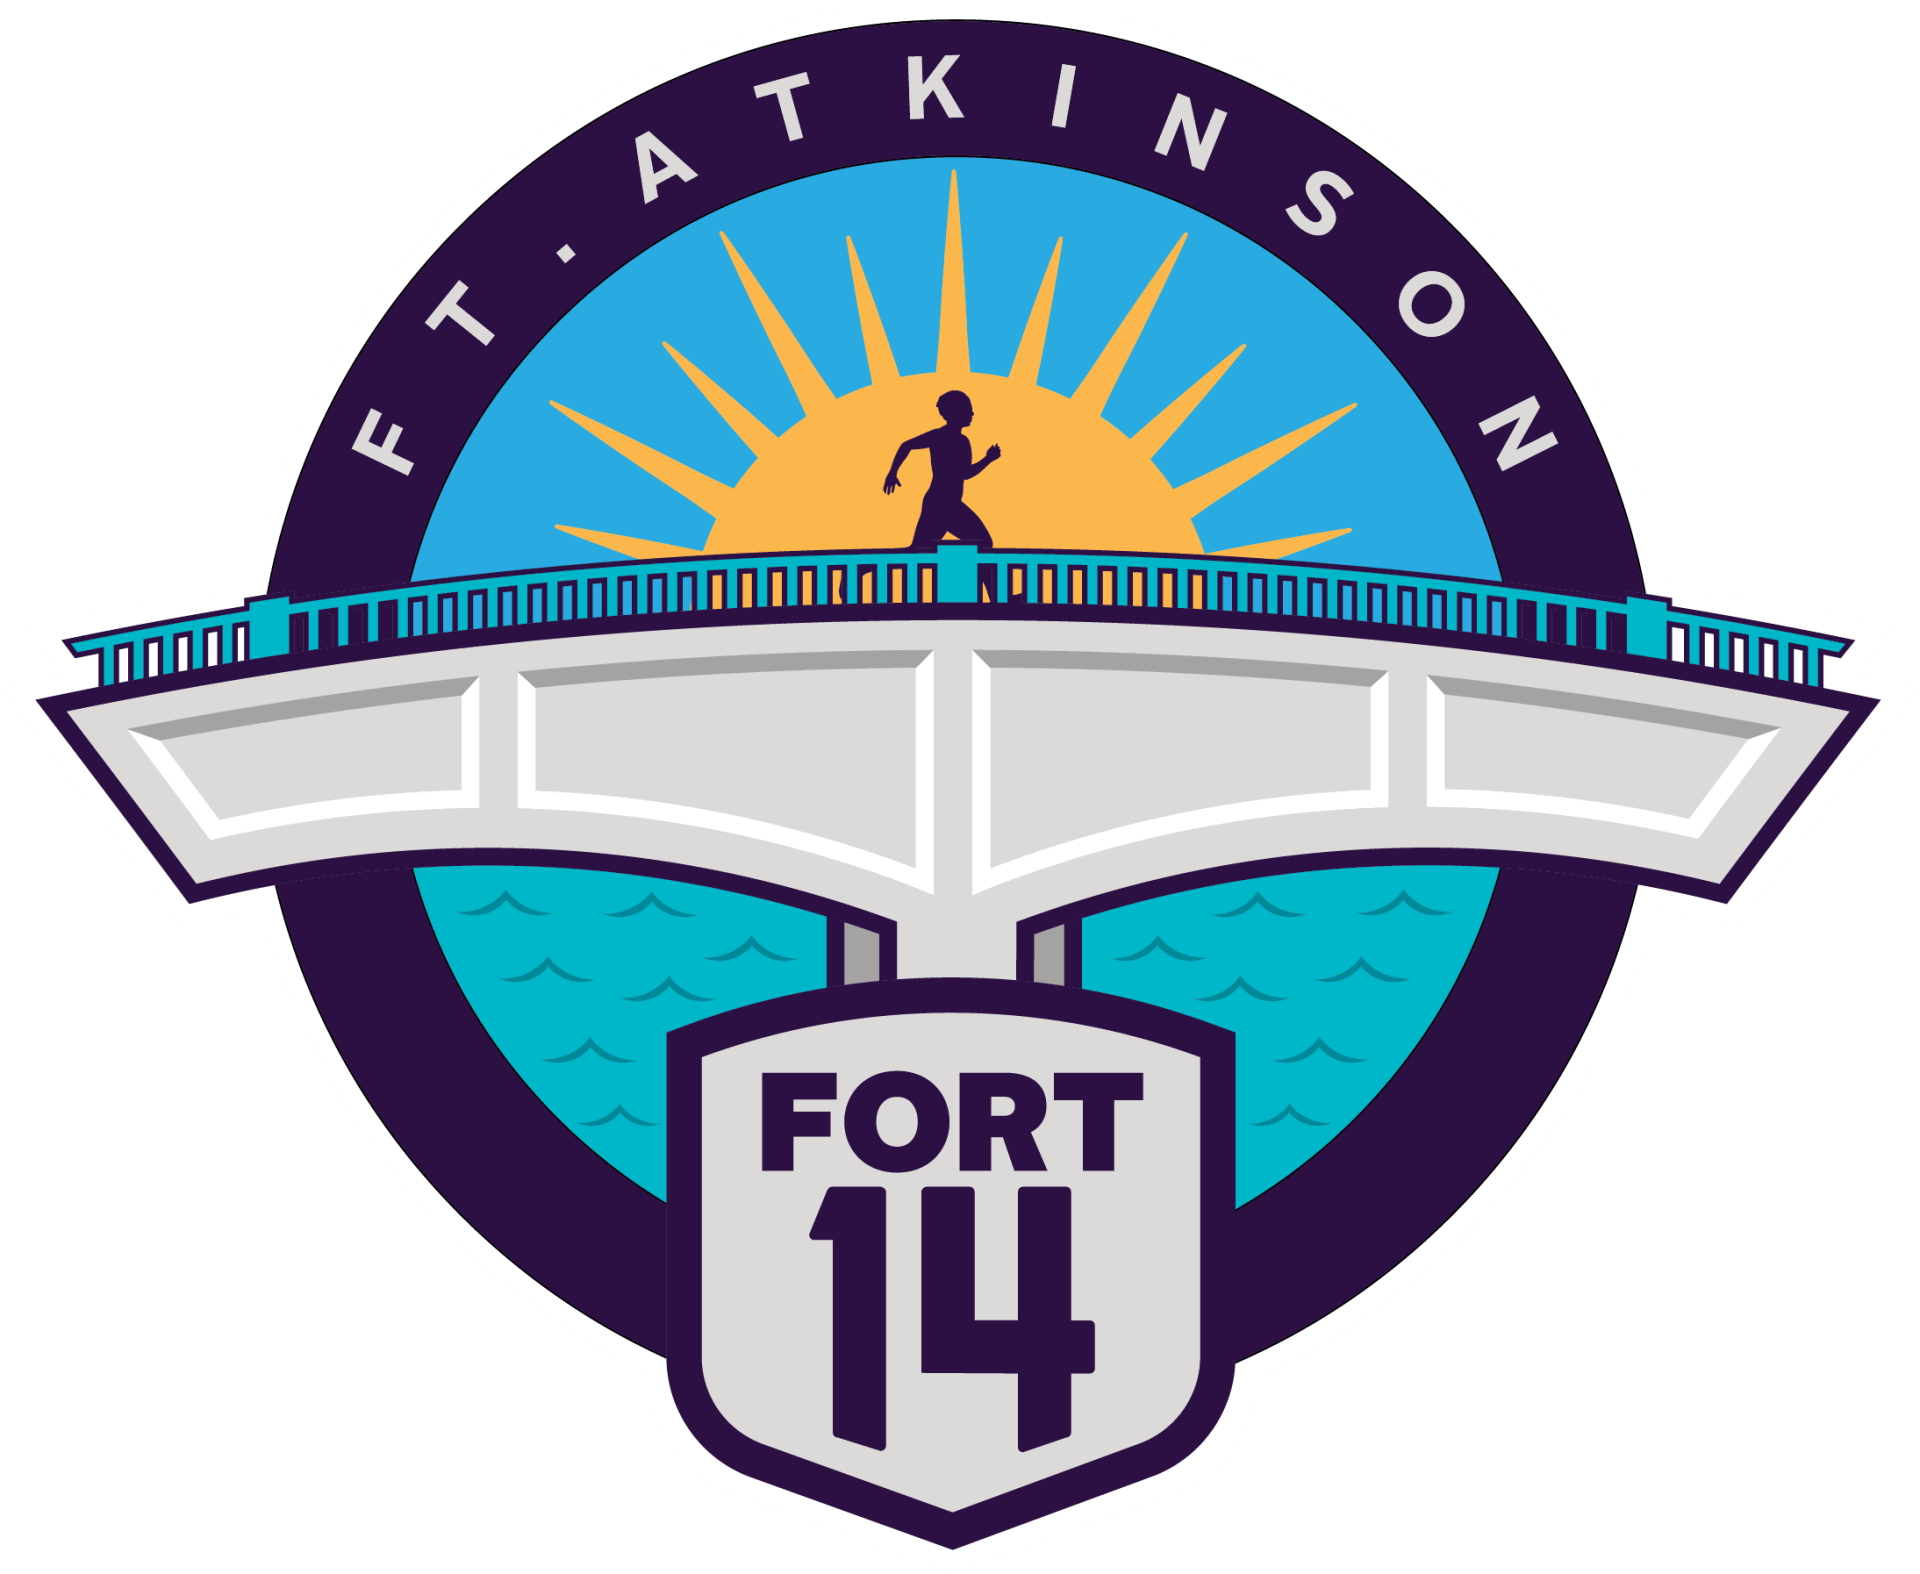 Fort14Logo-w1920.png